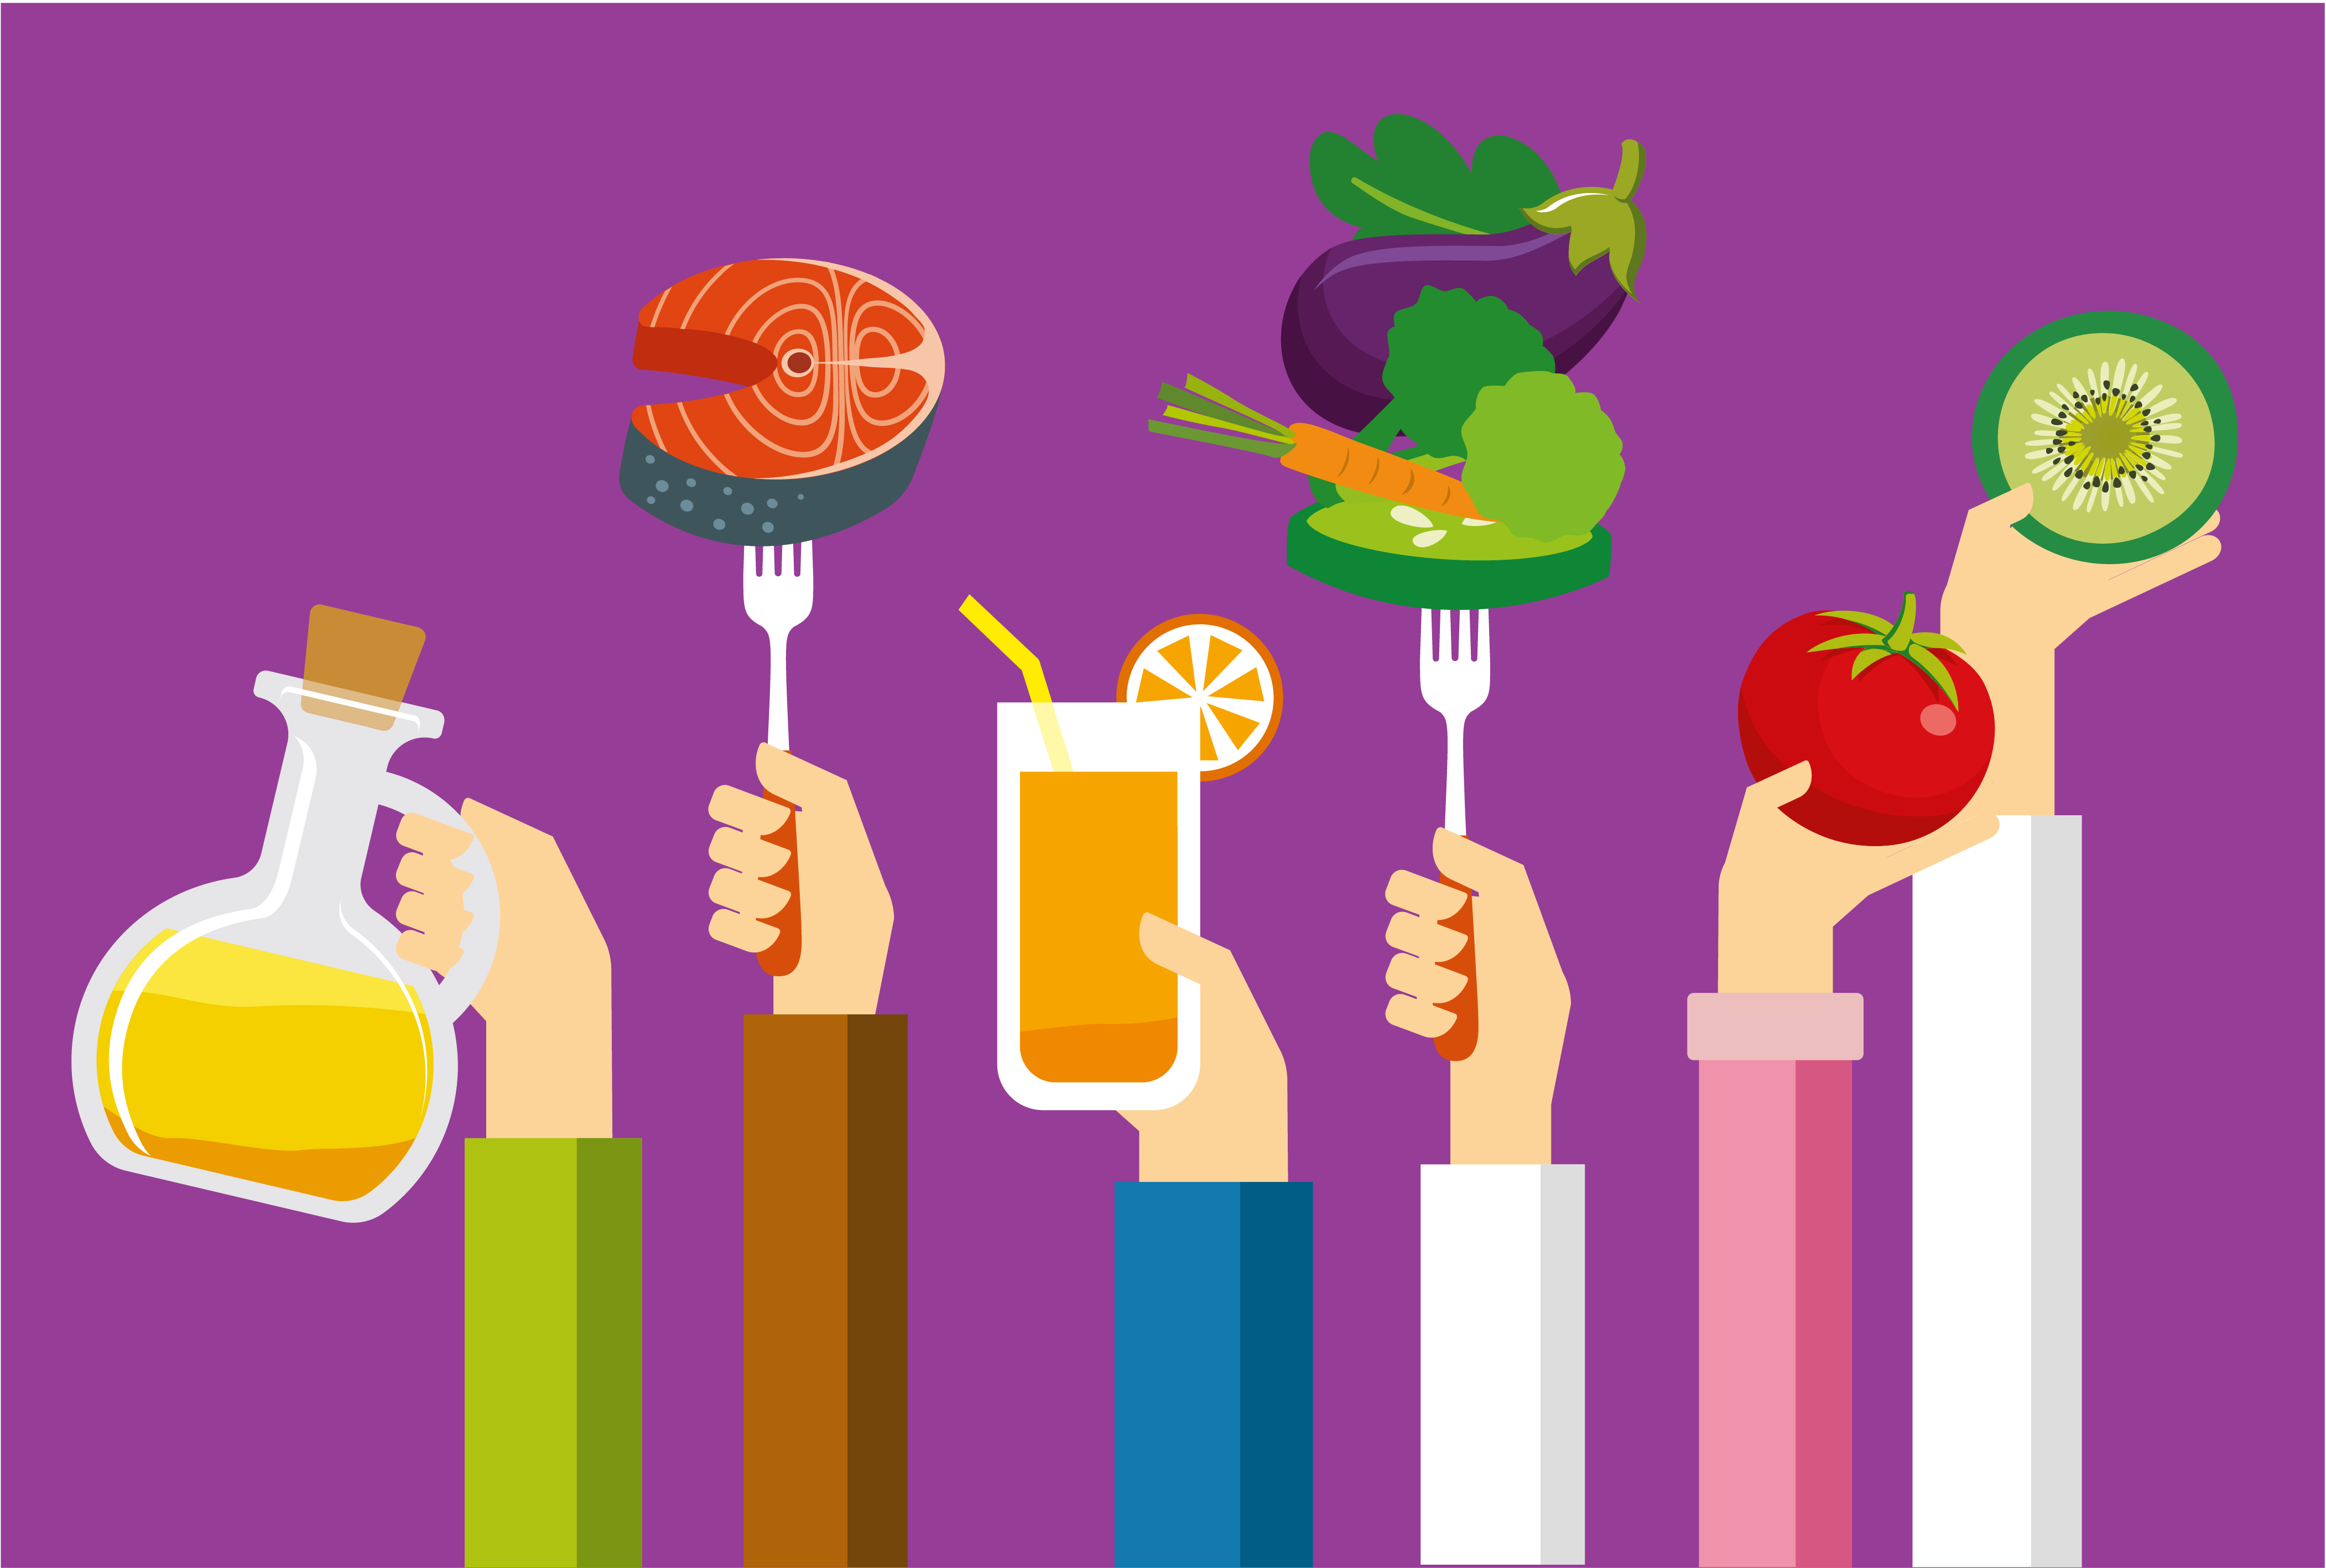 Illustration of hands holding up a range of food and drinks items, set against a purple background